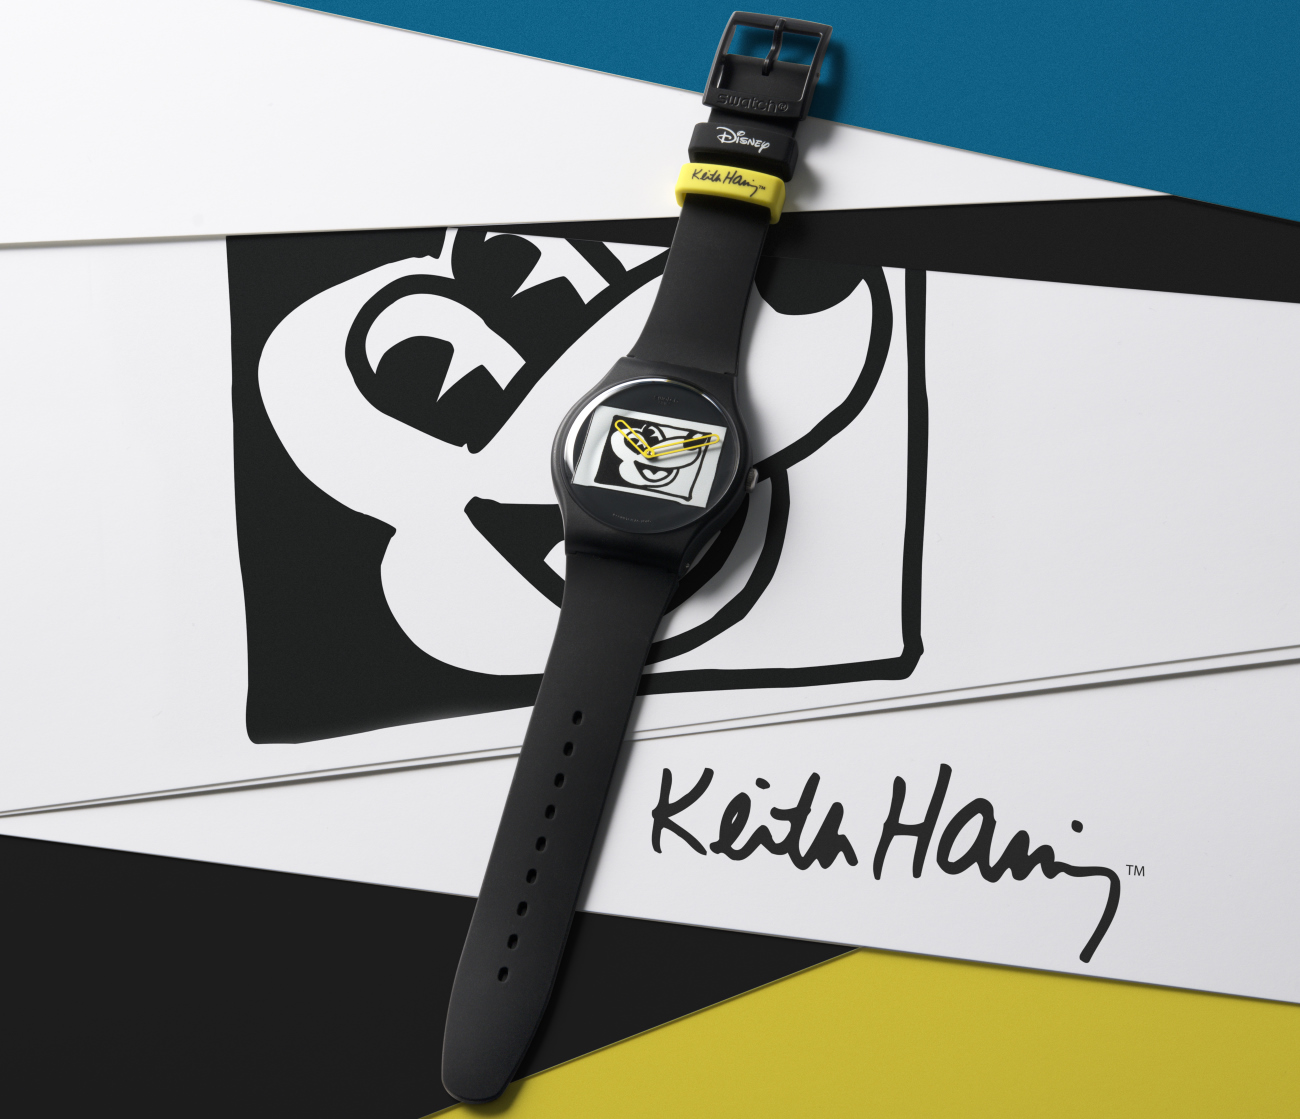 swatch_mickey_mouse_x_keith_haring_mouse_noir_blanc_-_europa_star_watch_magazine_2020